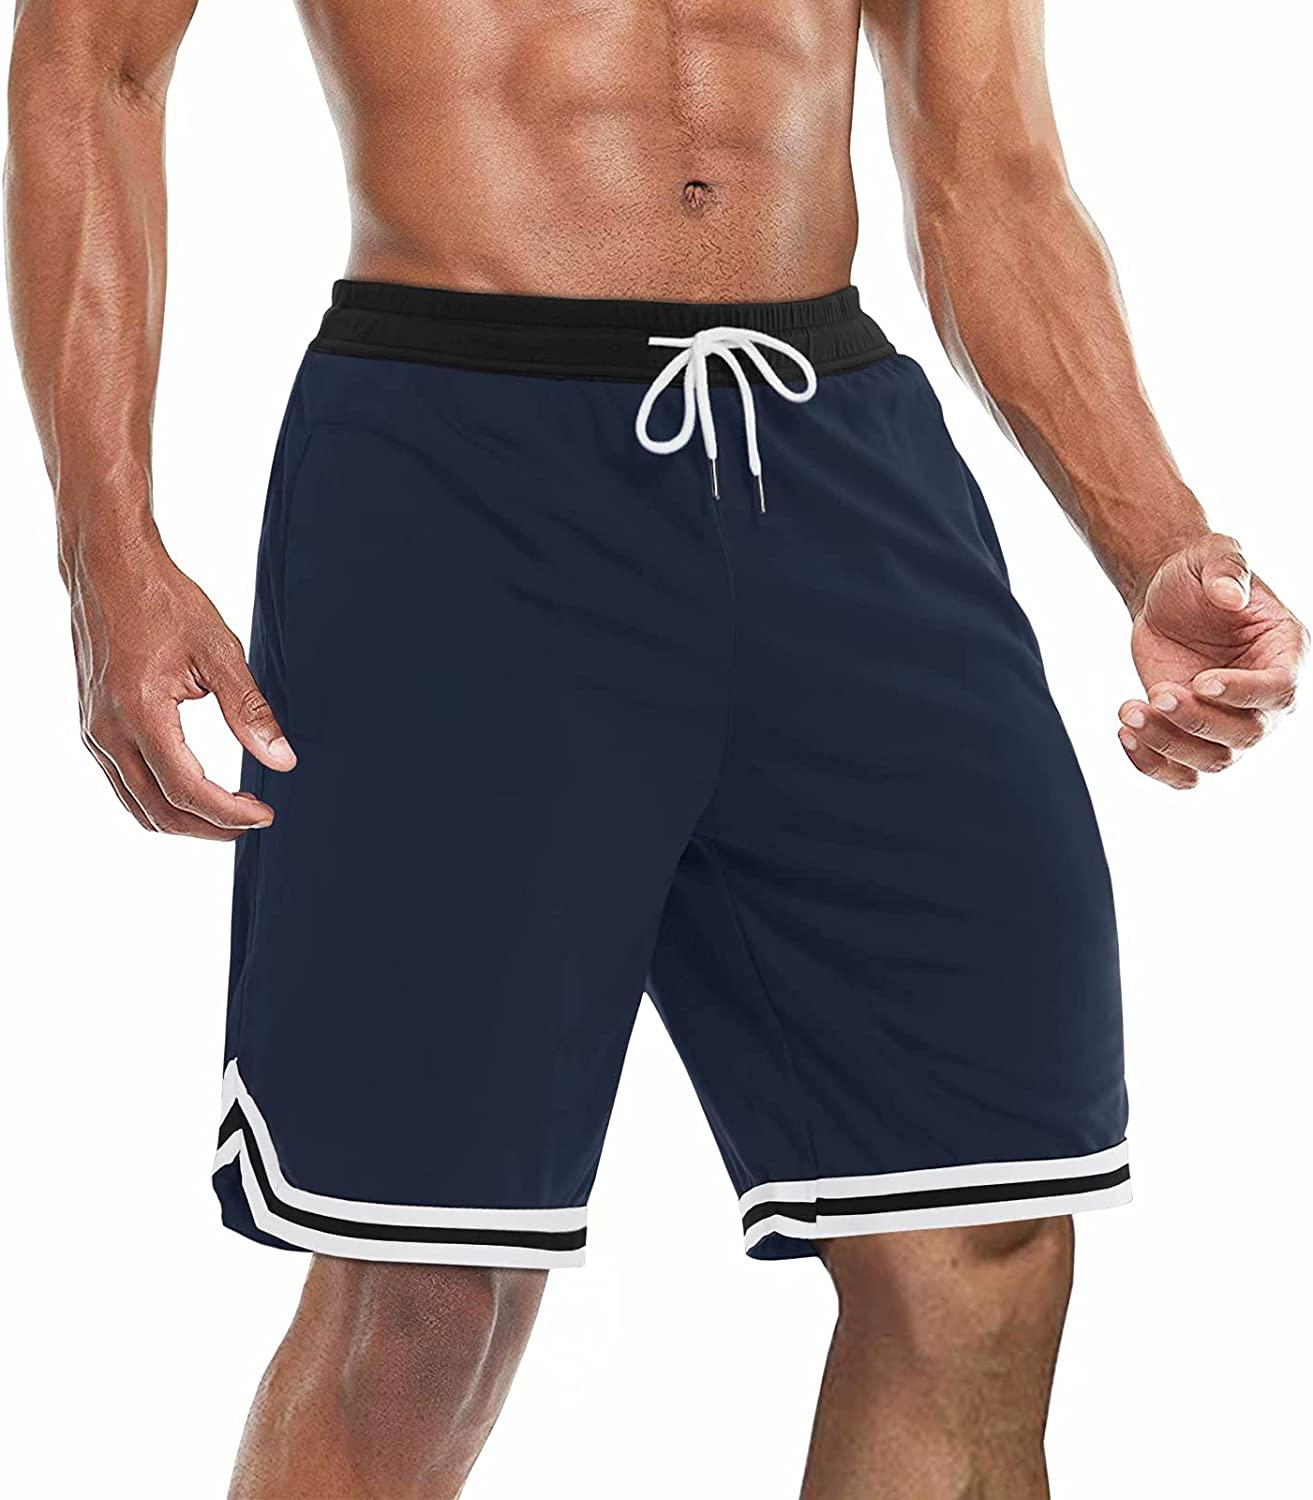 BIYLACLESEN Men's Athletic Running Shorts Quick Wor Mesh Gym Dry Special price for New color a limited time